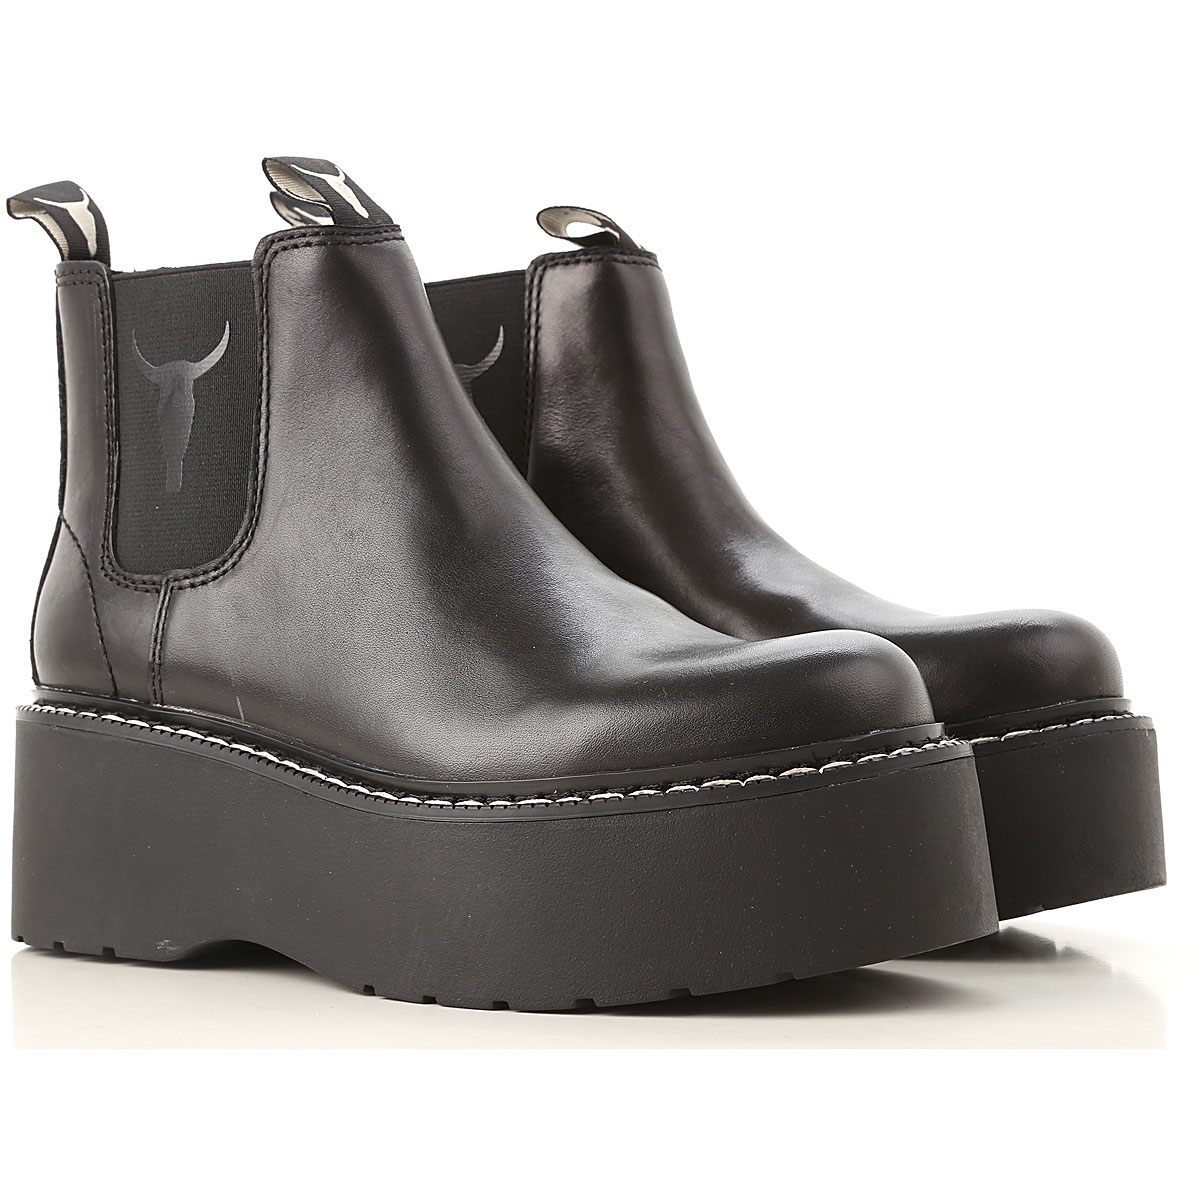 5a1e980f105 Windsor Smith. Shoes for Women